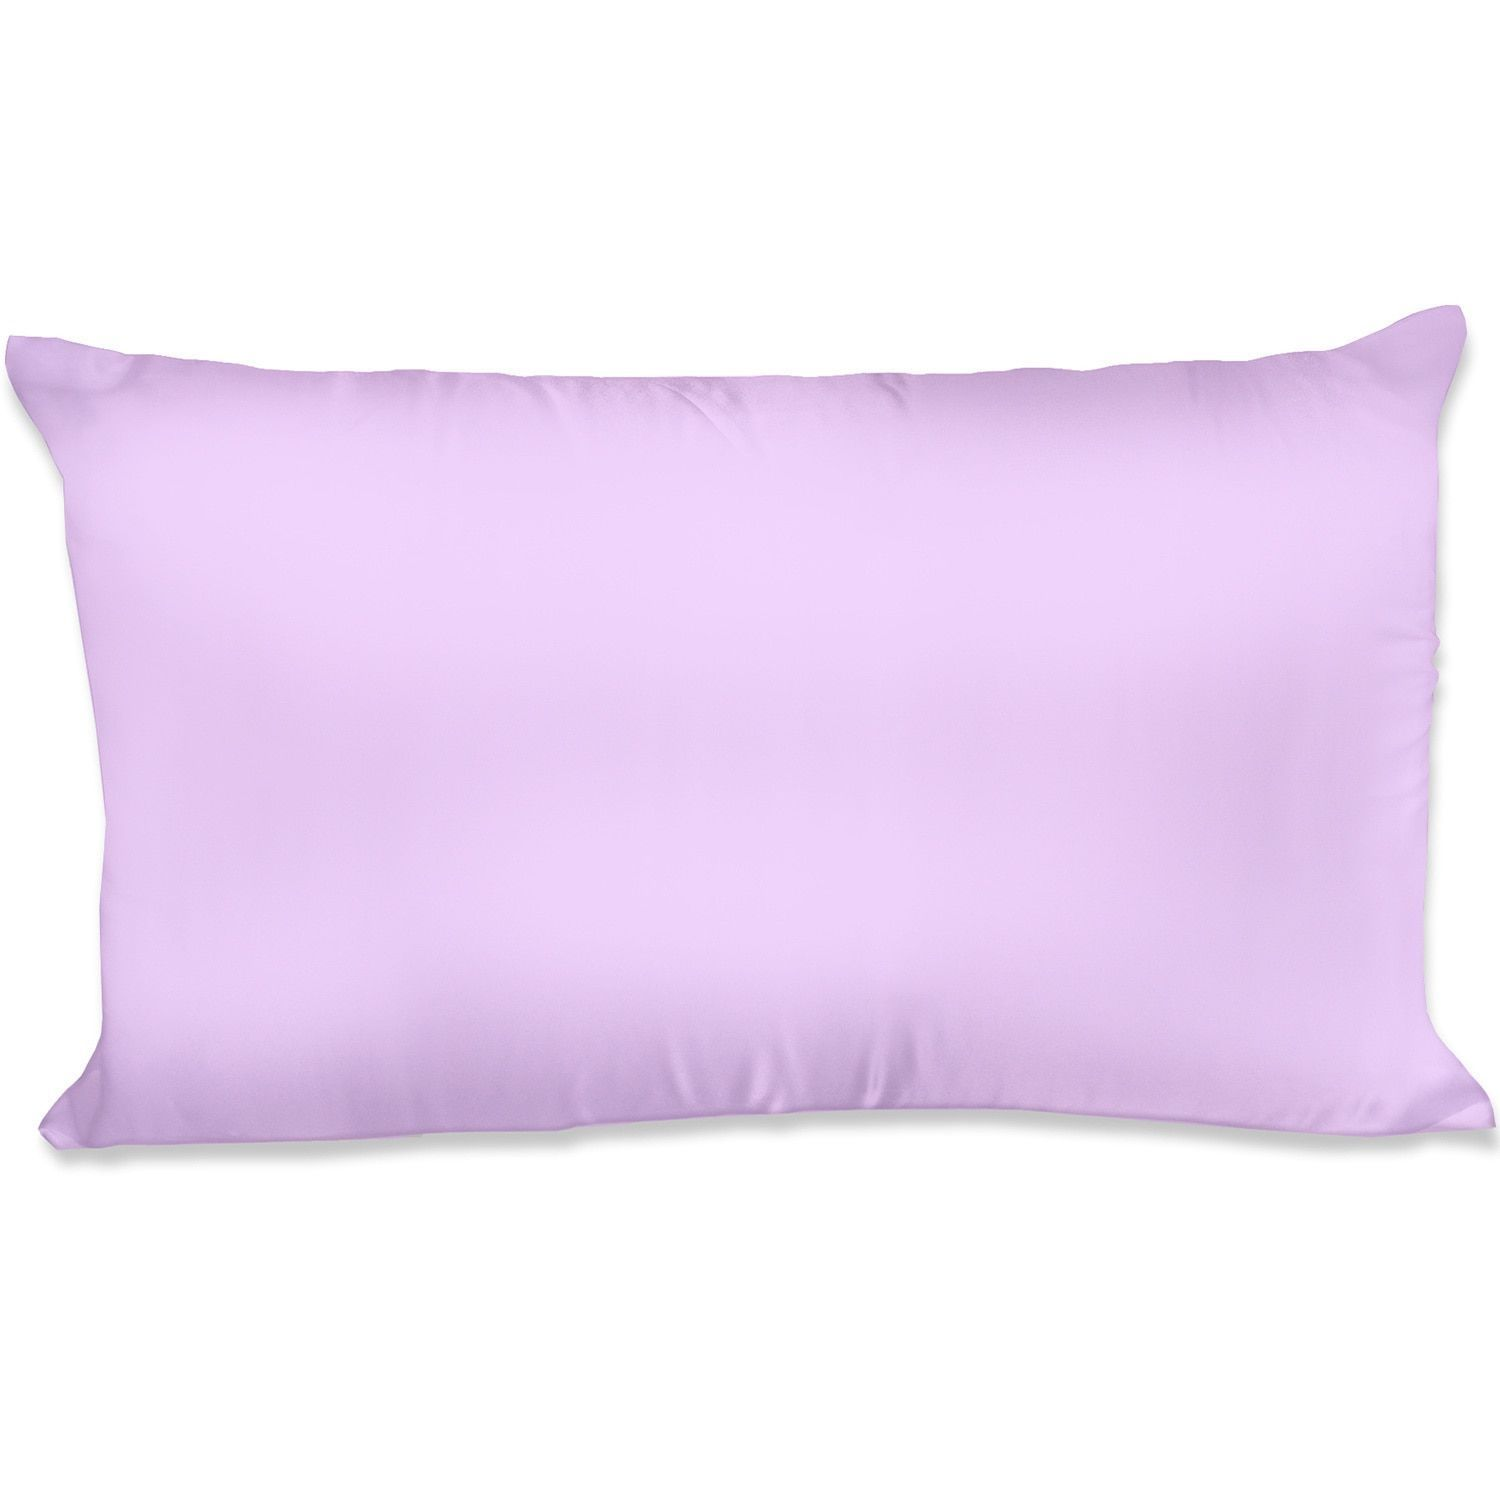 Online Shopping Bedding Furniture Electronics Jewelry Clothing More Satin Pillowcase Pillow Cases Purple Pillow Cases